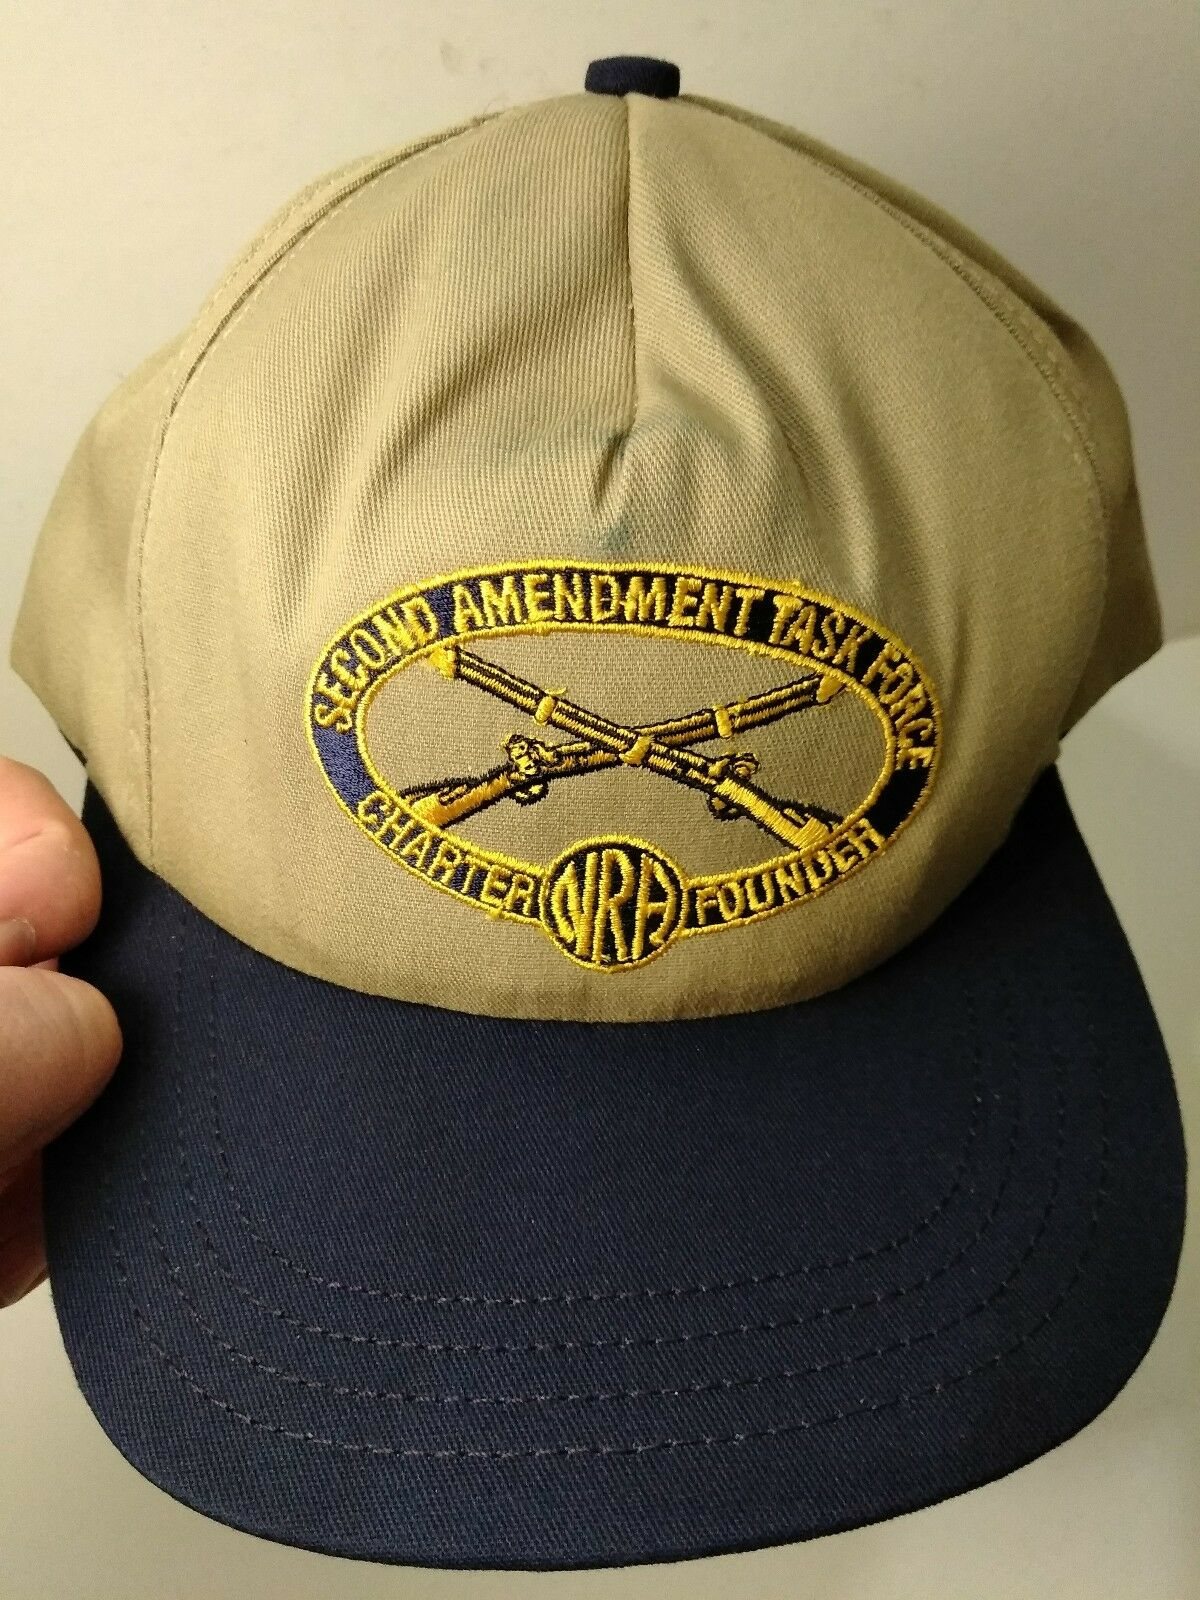 Second Force Amendment Task Force Second Charter NRA Founder Hat Beige 2 MADE IN USA 85d788